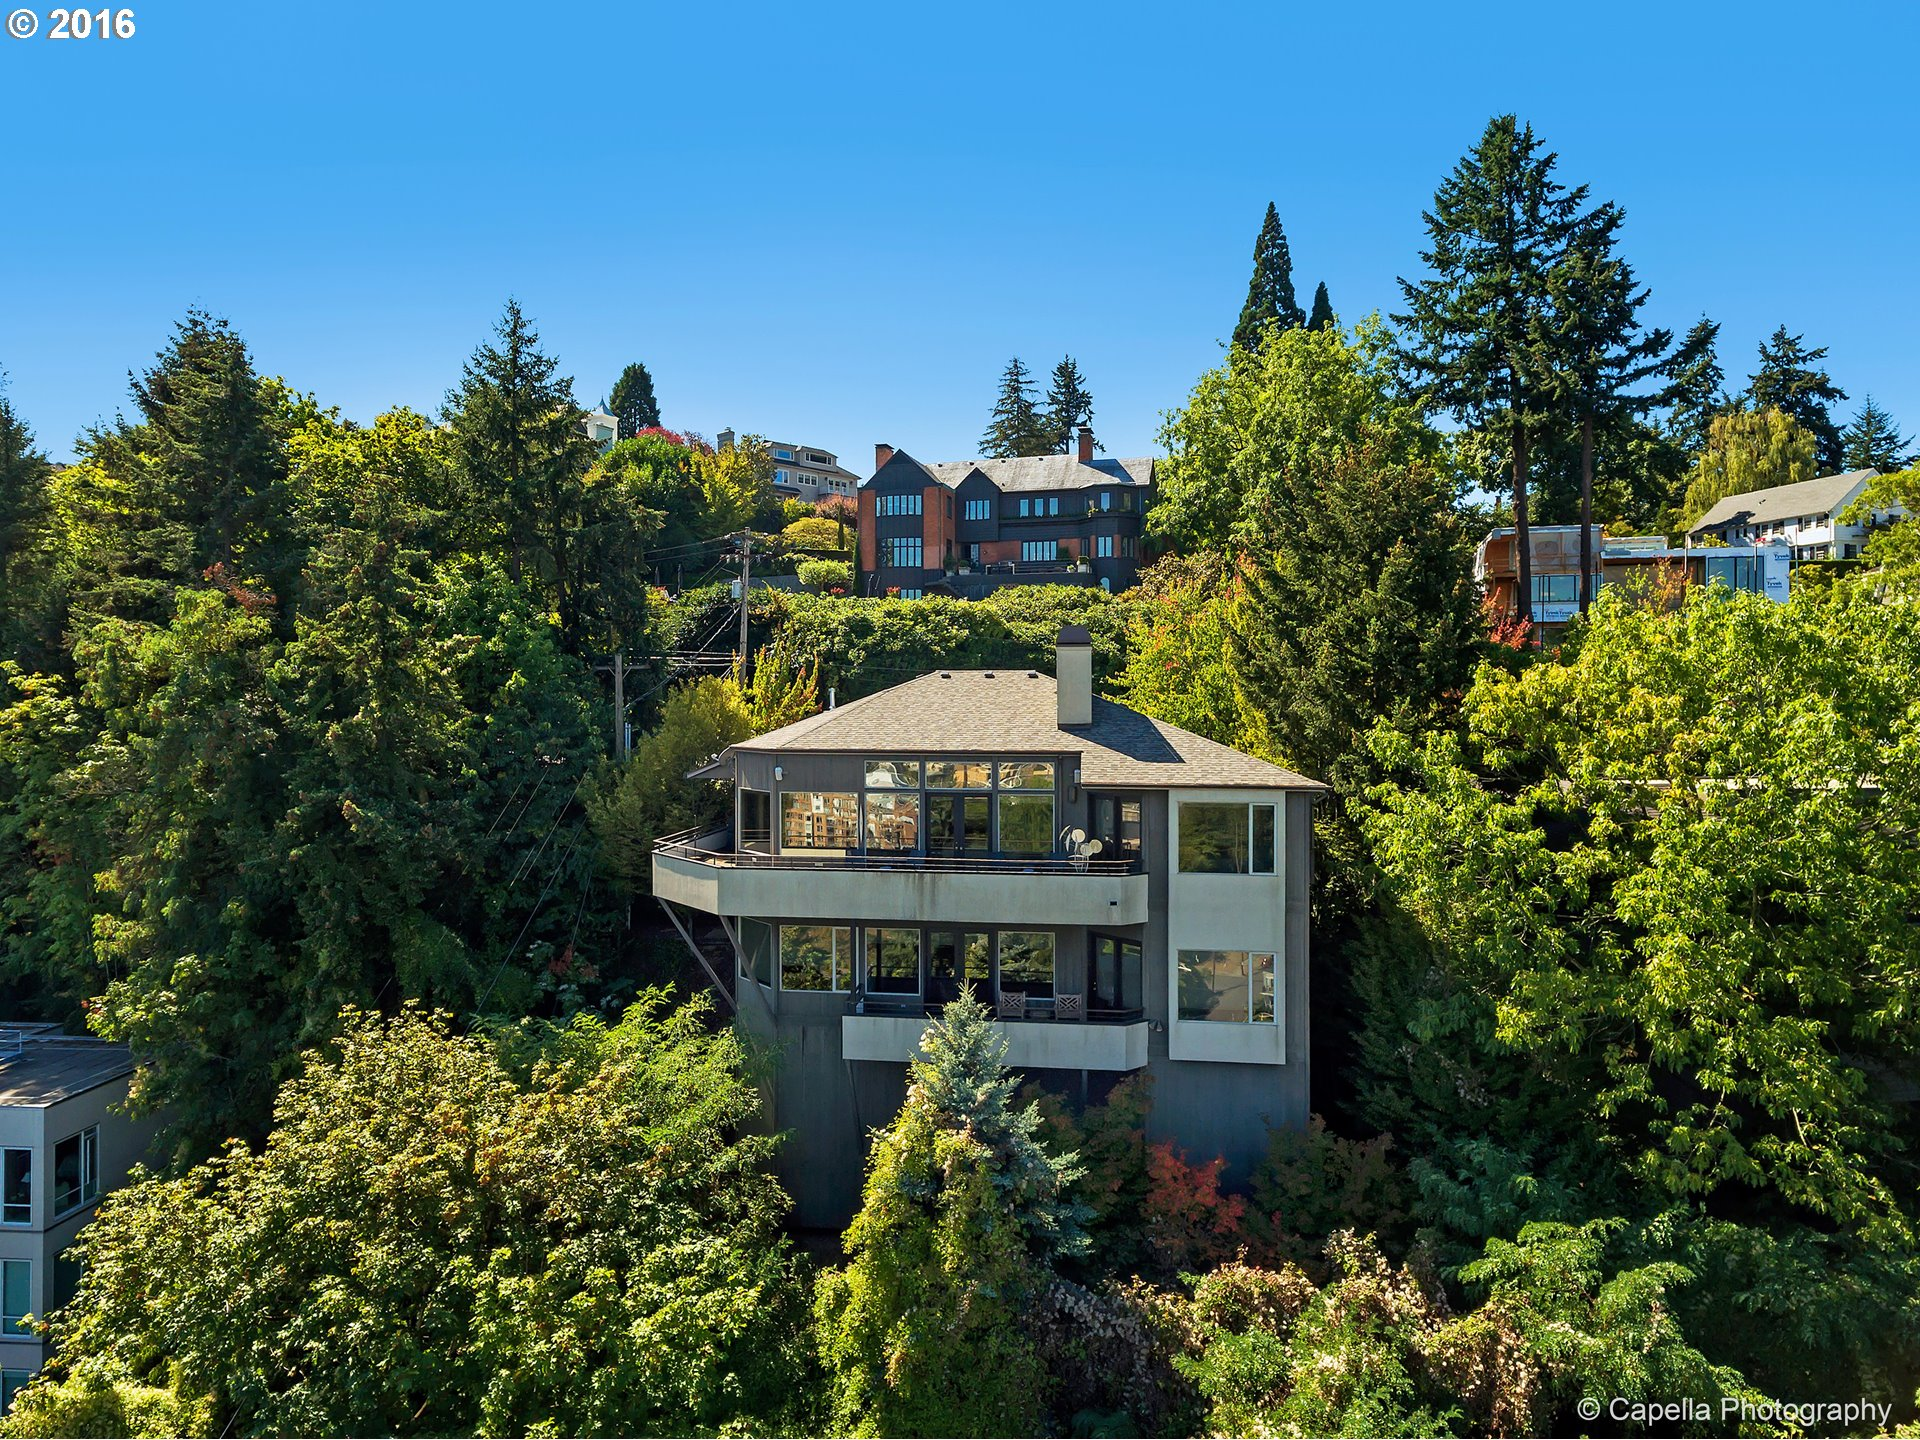 Photo for 1464 SW VISTA AVE, Portland, OR 97201 (MLS # 16104328)